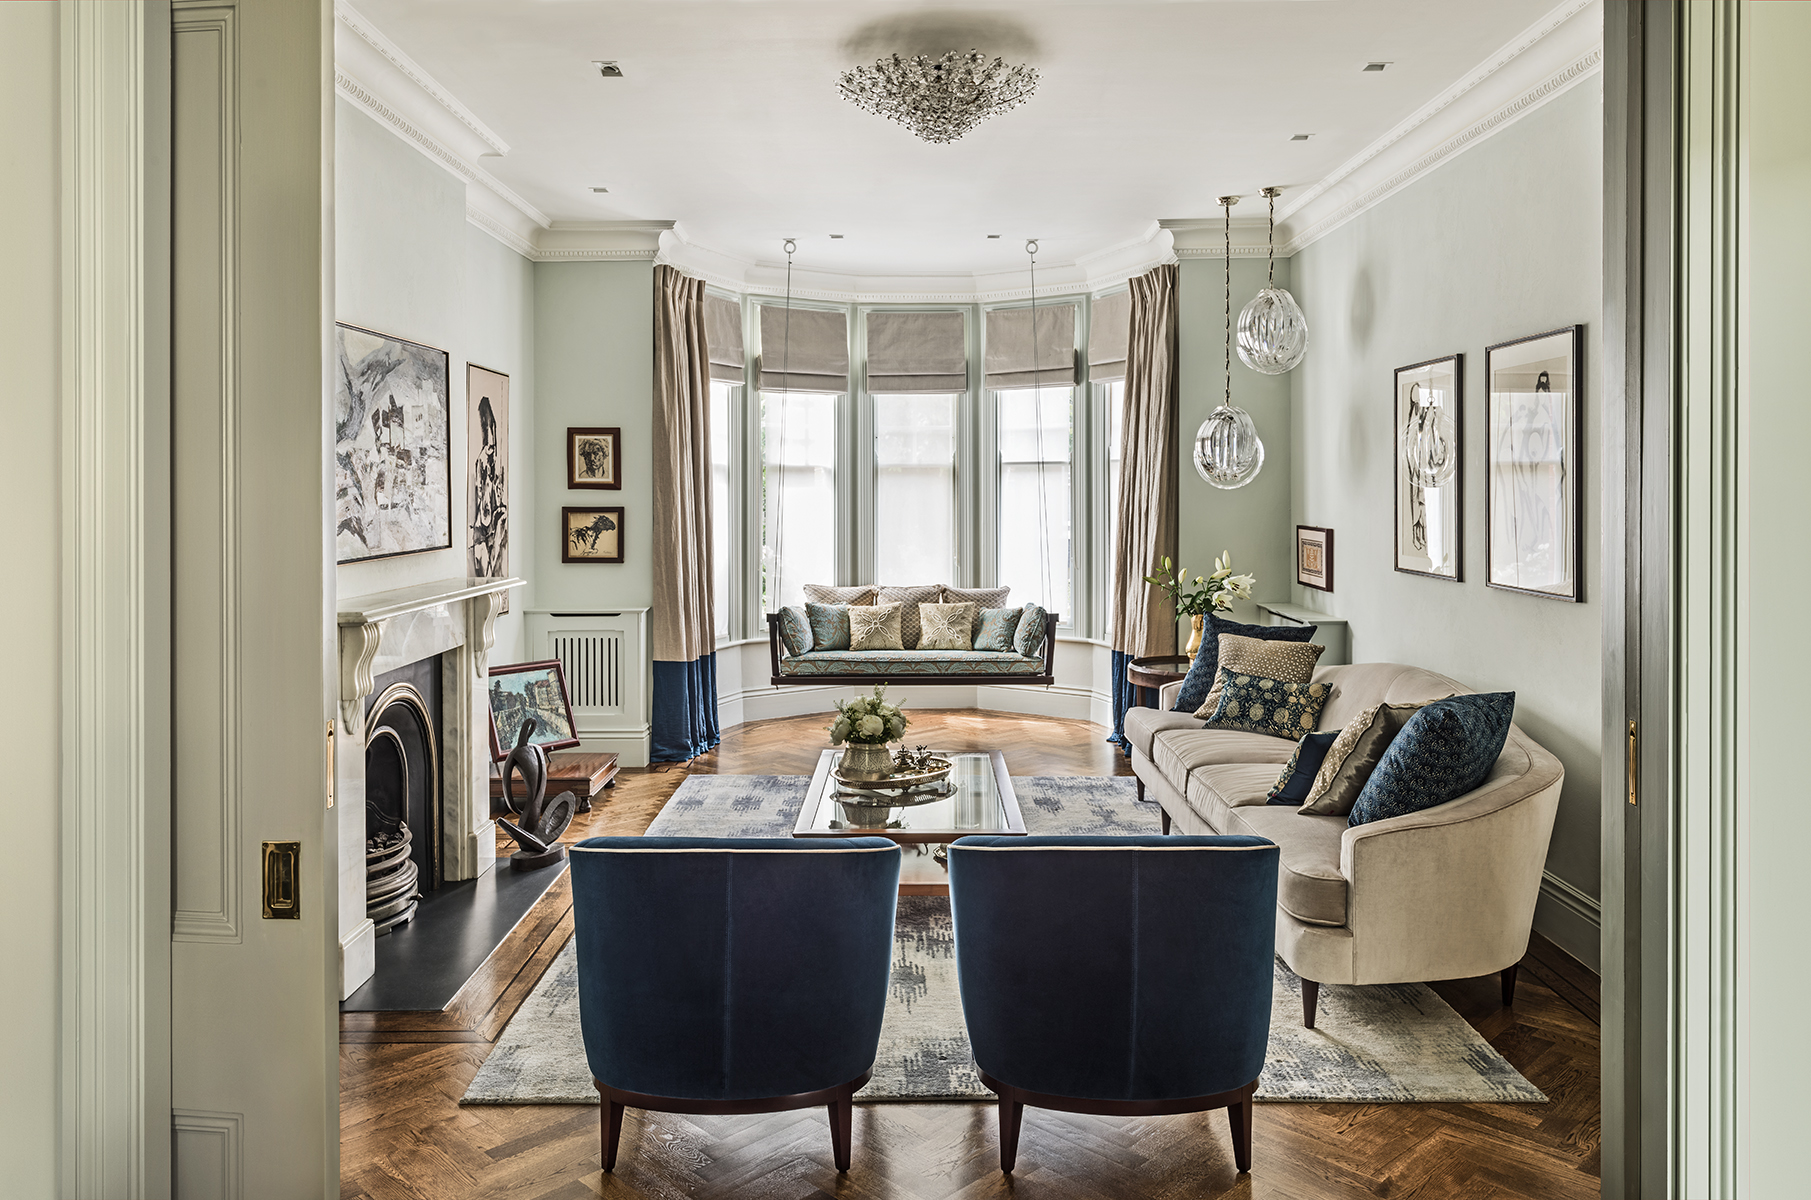 Top 12 interior design living room ideas from the best uk interior